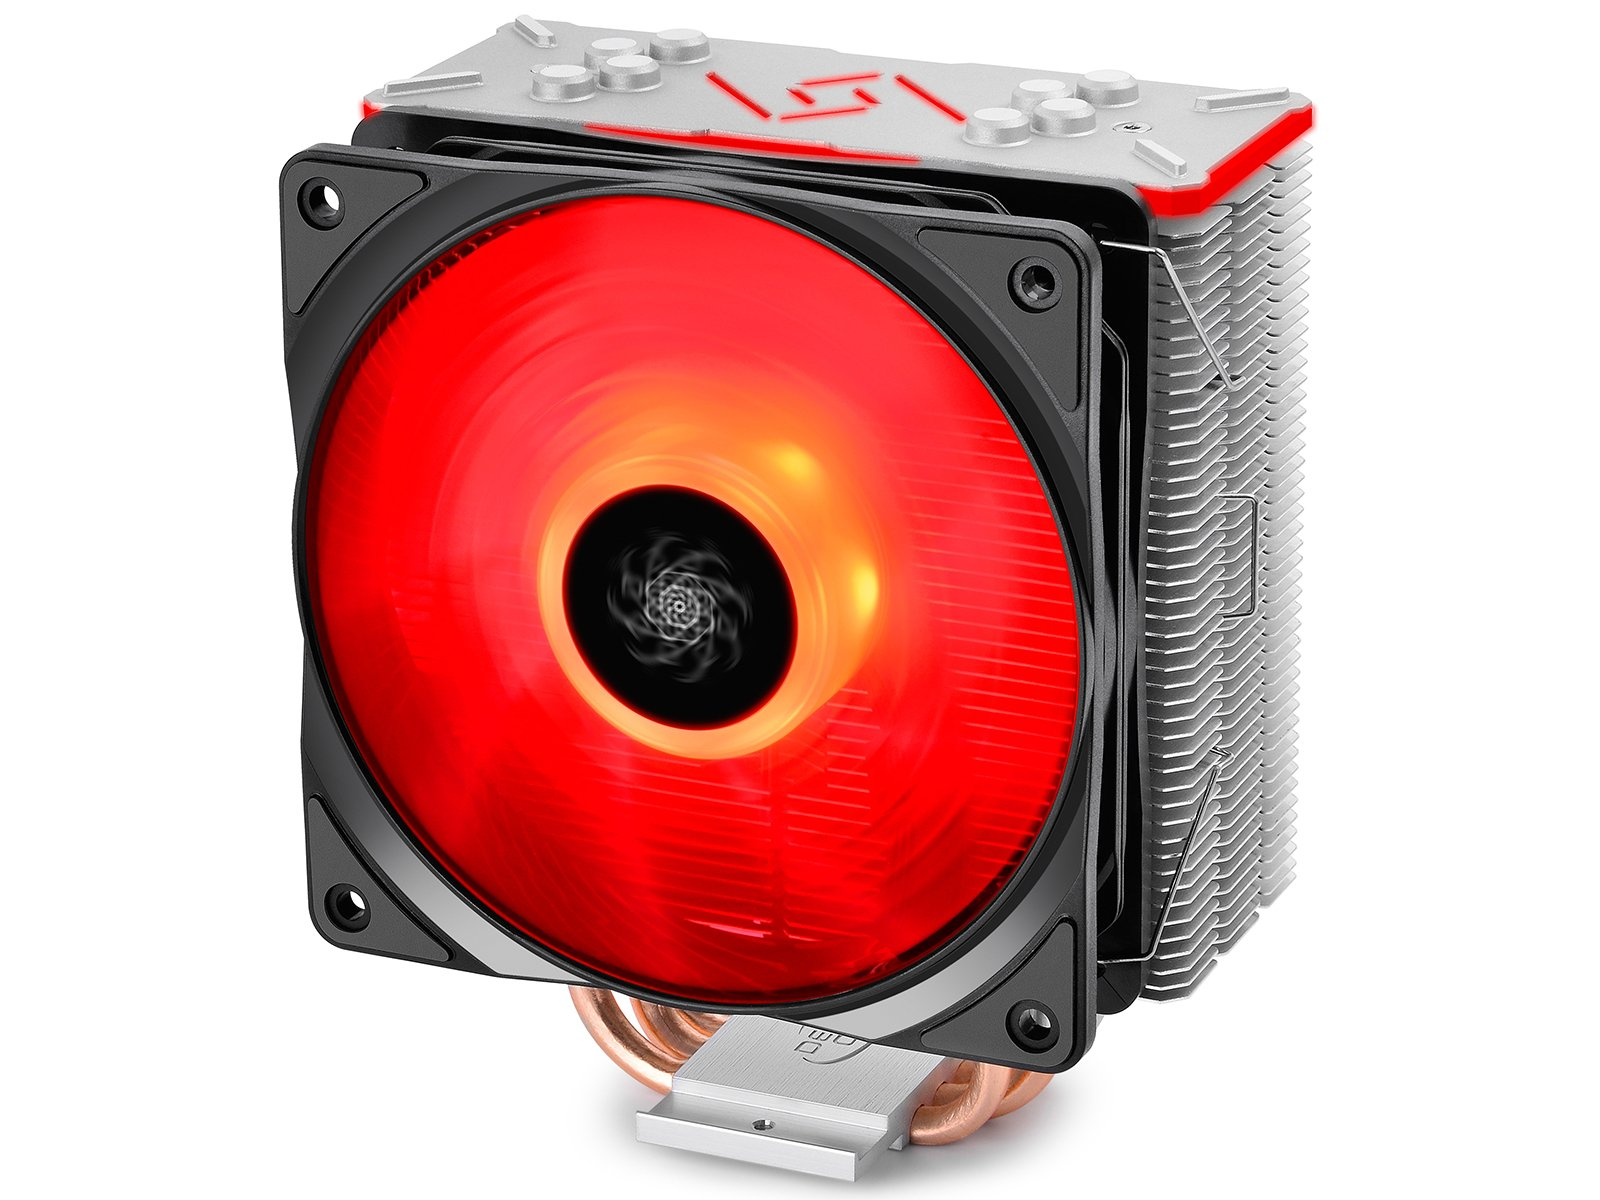 DeepCool RGB CPU Cooler 4 Heat Pipes 120mm RGB Fan Universal Socket Solution (GAMMAXX GT)